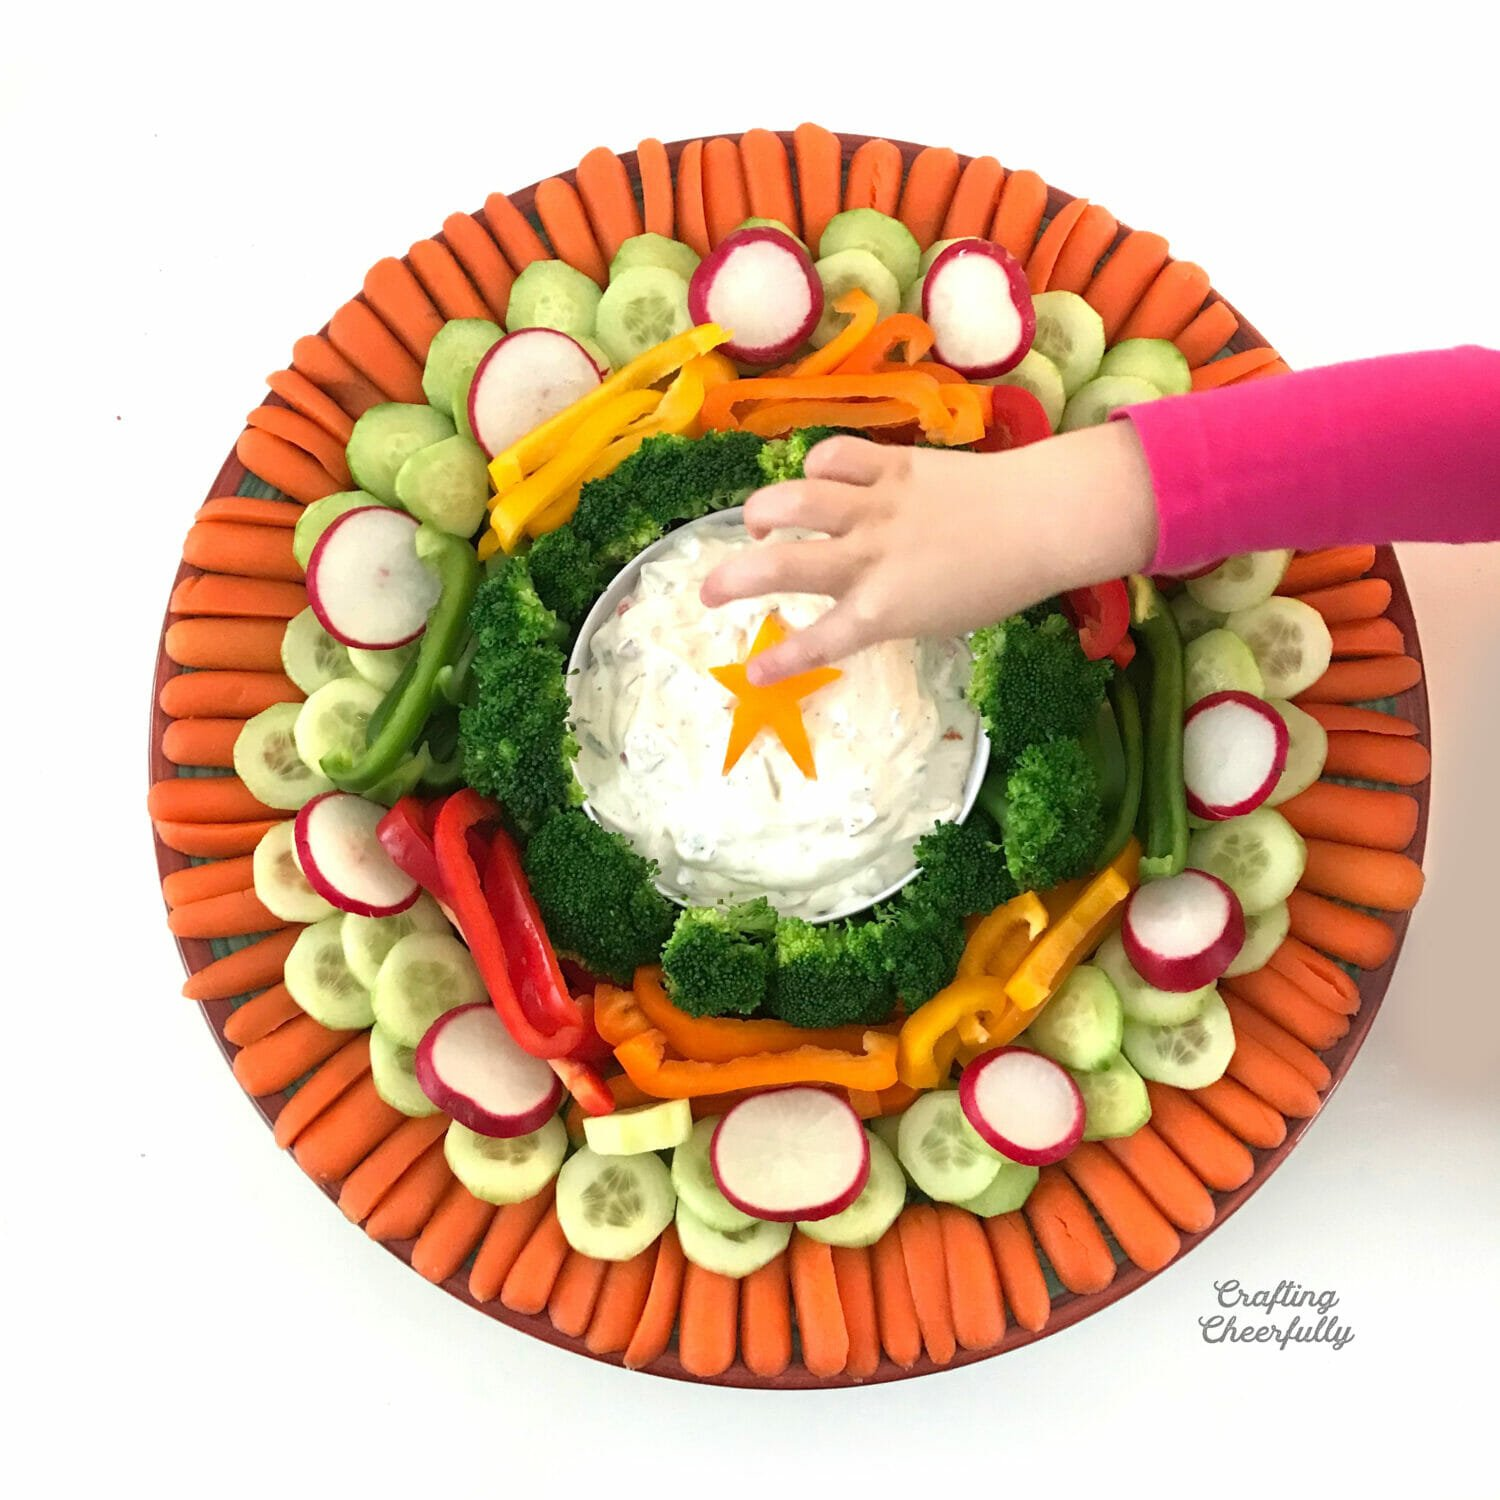 Holiday vegetable platter with a star in the center of the dip and a little girl pushing it in.